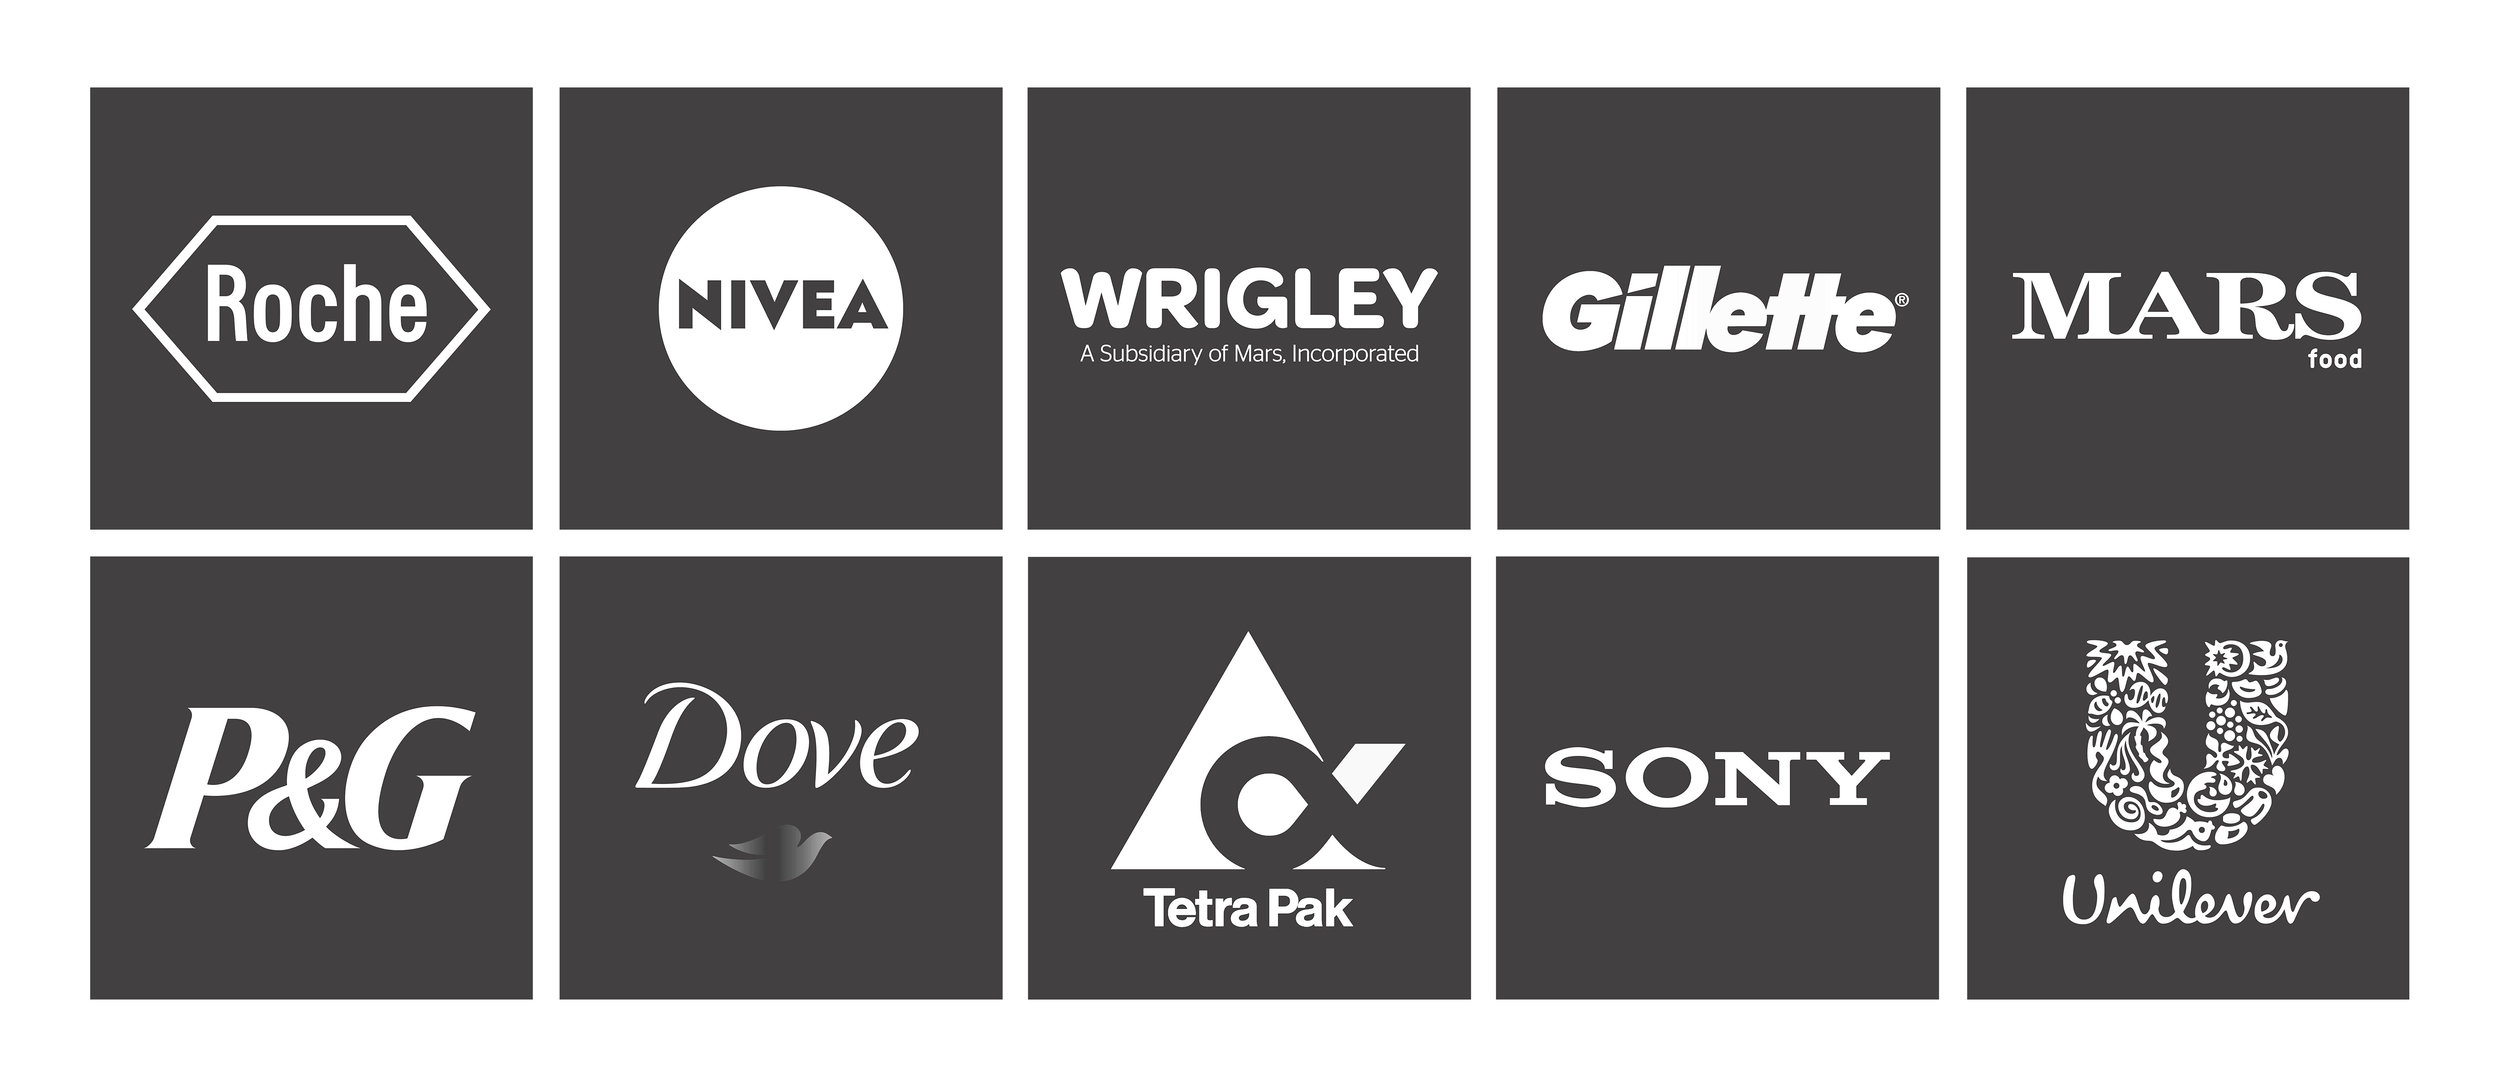 Here are just a few of our clients and creative partners who we work with or on behalf of.